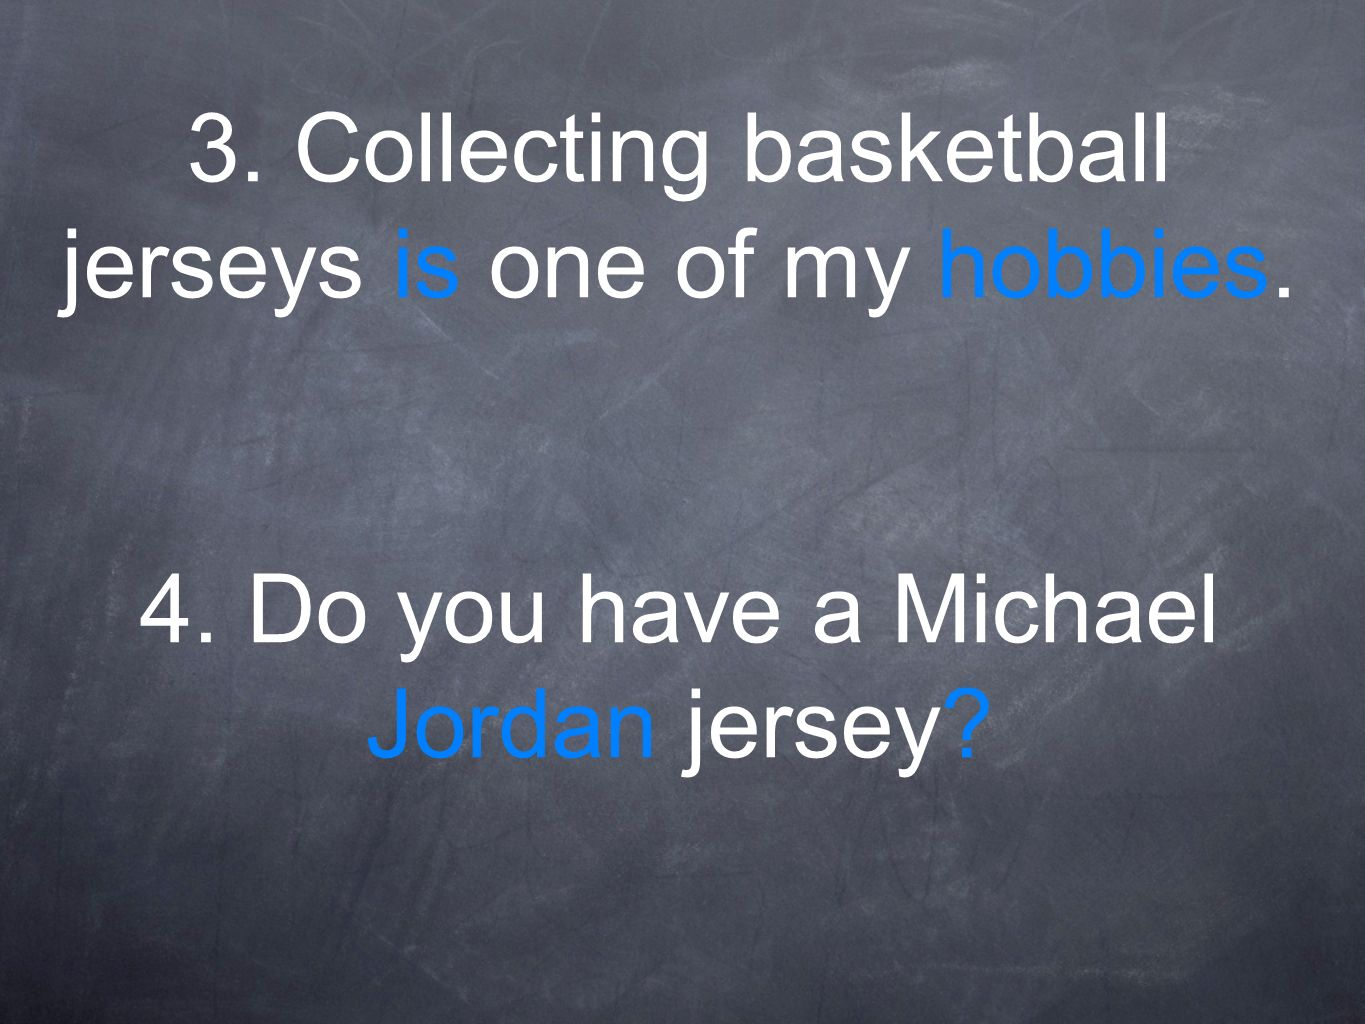 3. Collecting basketball jerseys is one of my hobbies. 4. Do you have a Michael Jordan jersey?